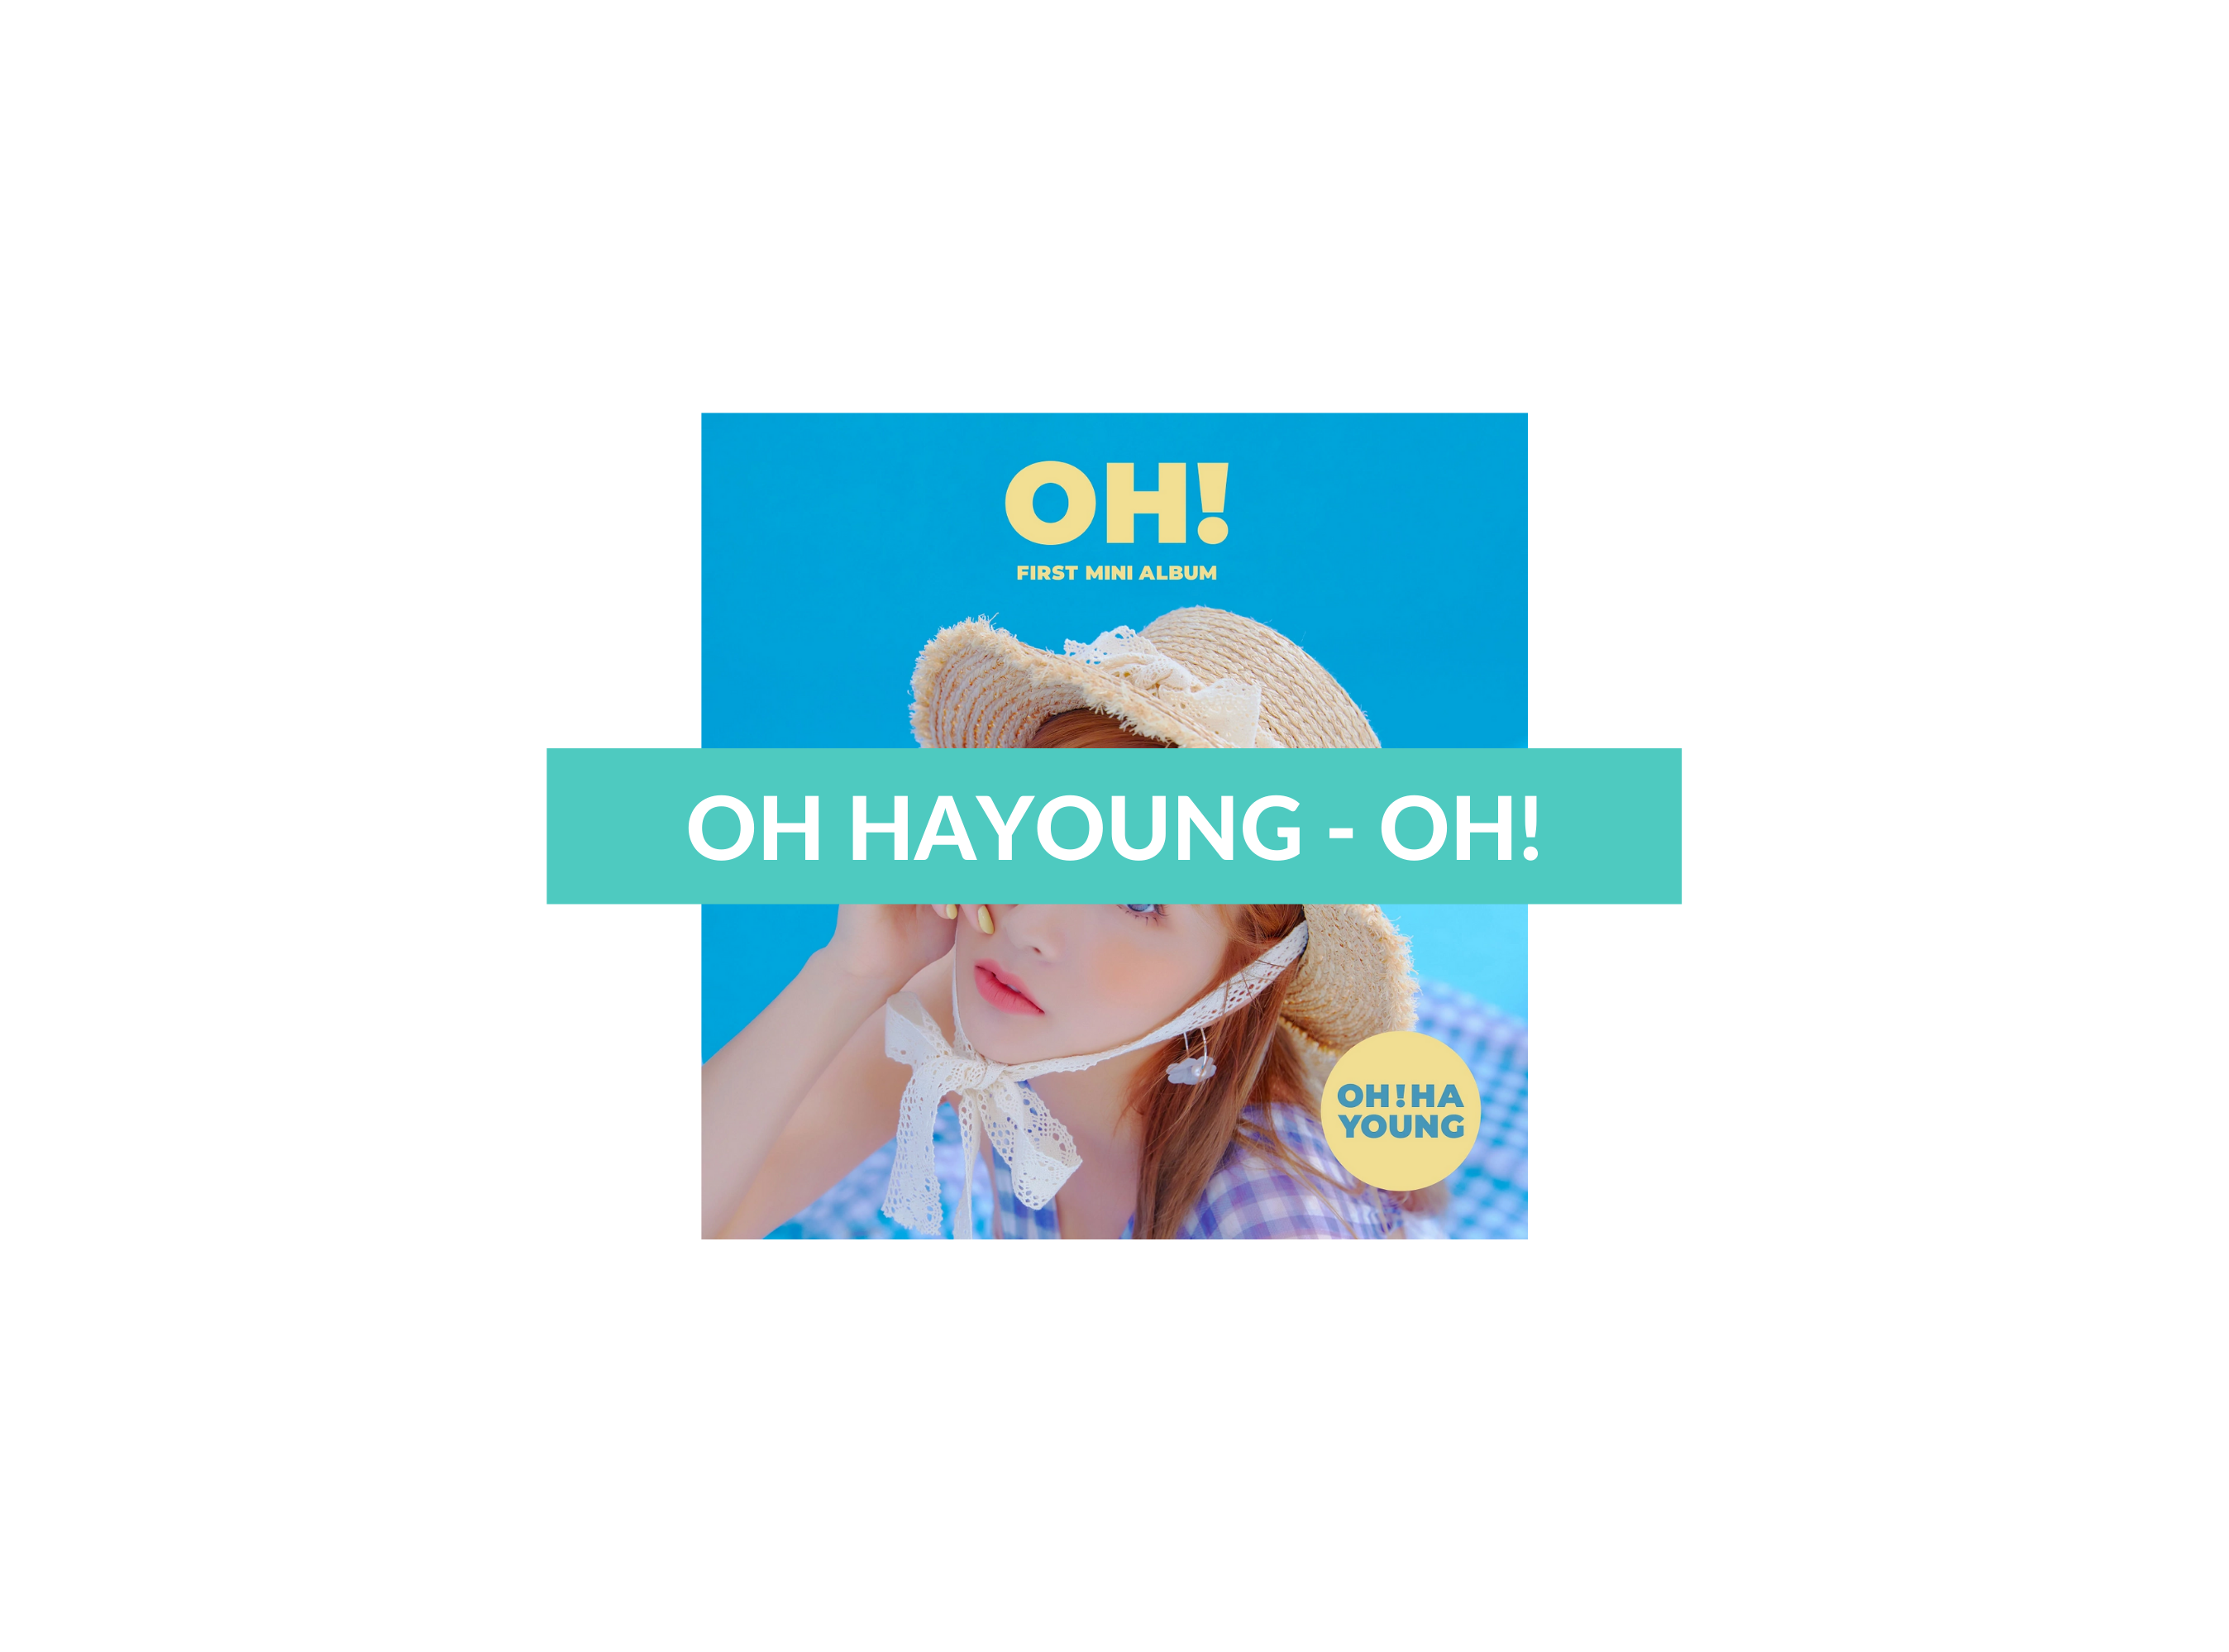 Oh Hayoung - OH!